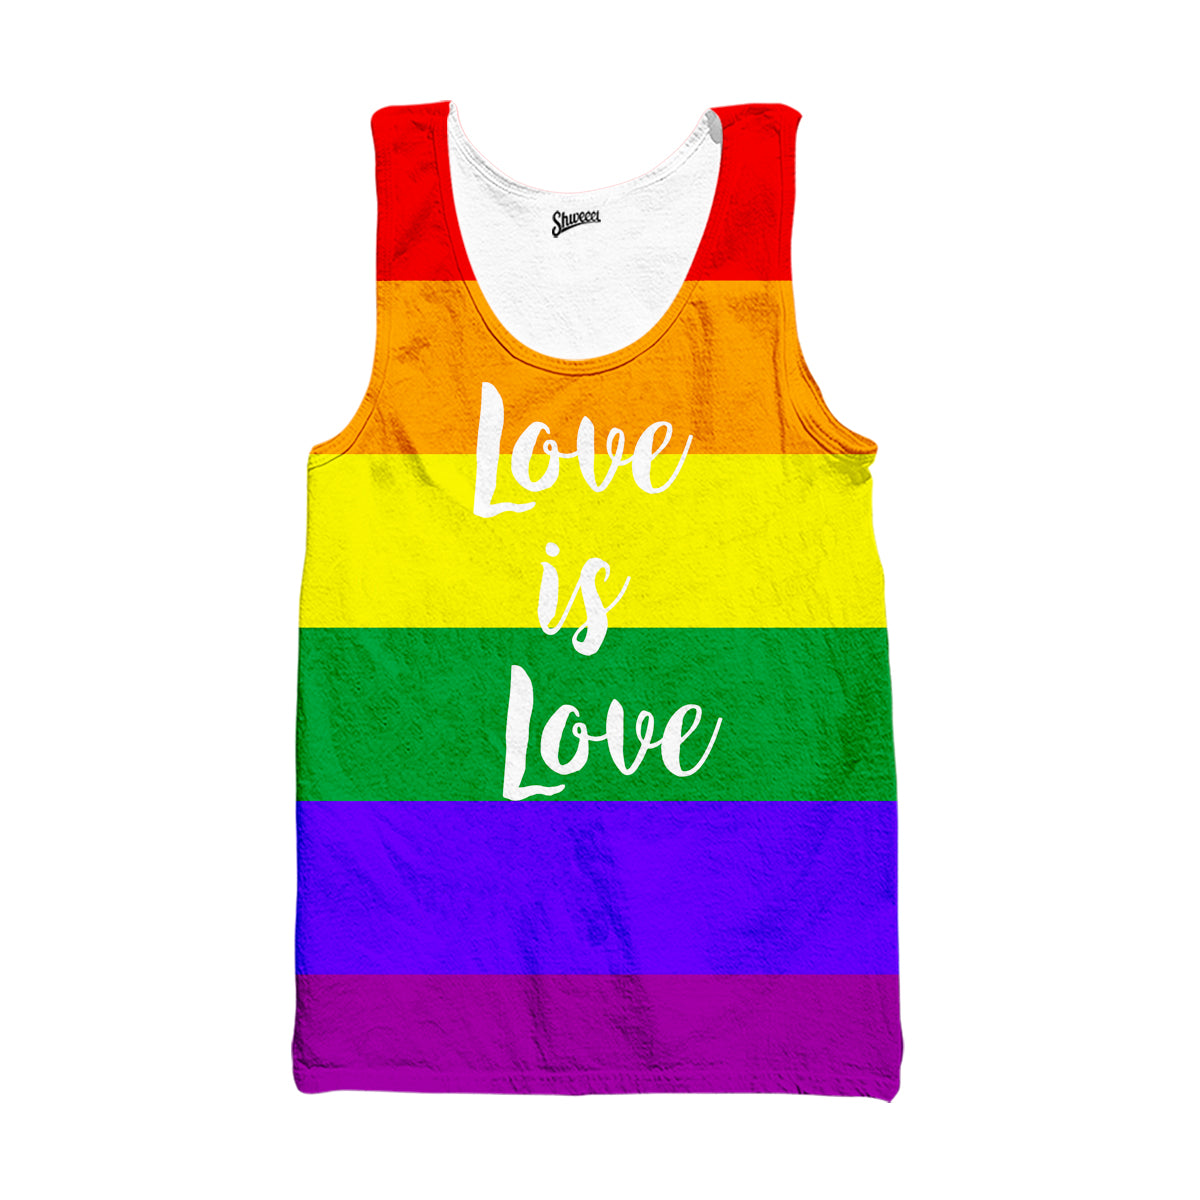 Love is Love Tank top